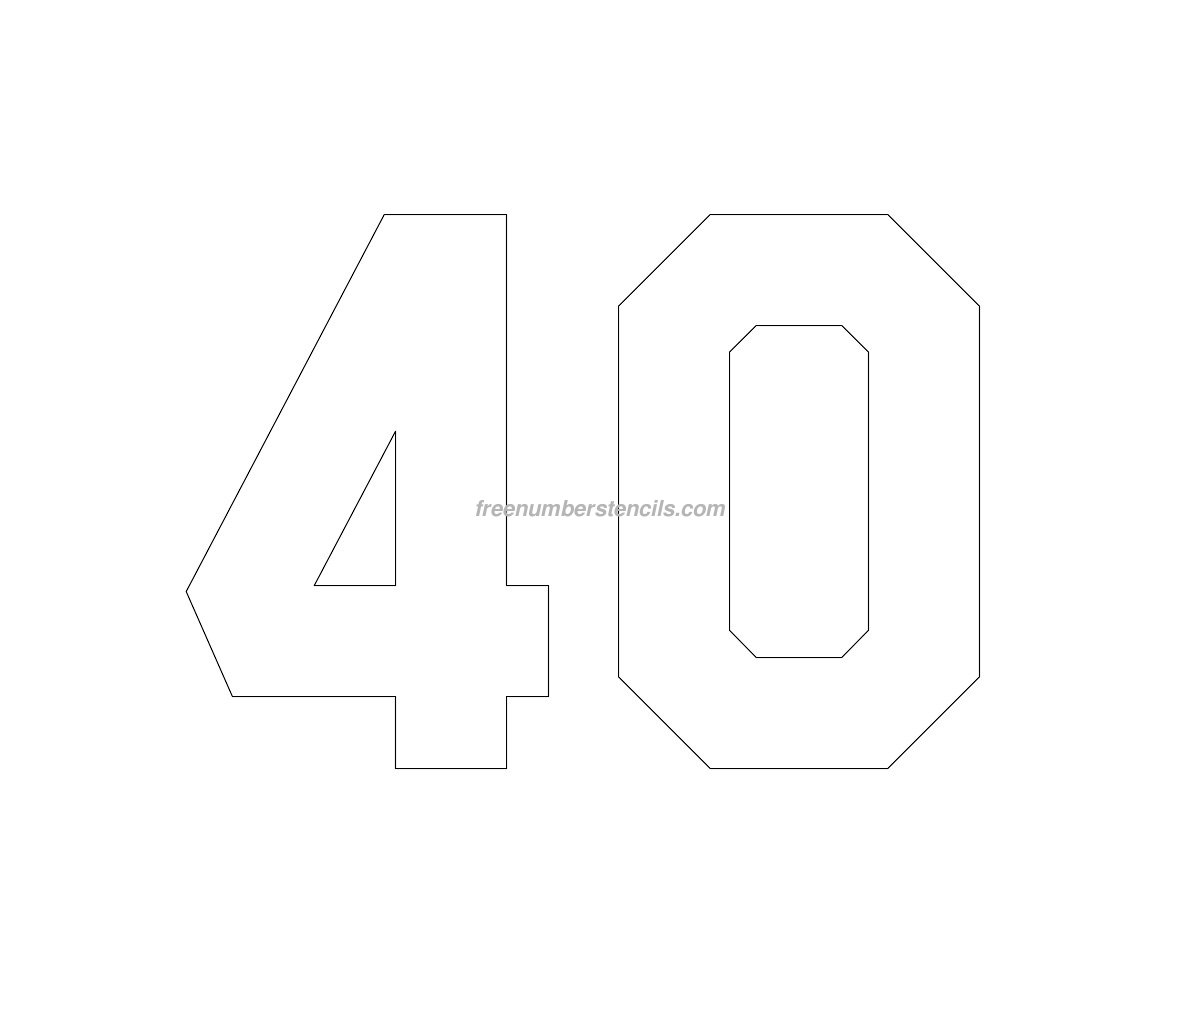 free jersey printable 40 number stencil freenumberstencils com